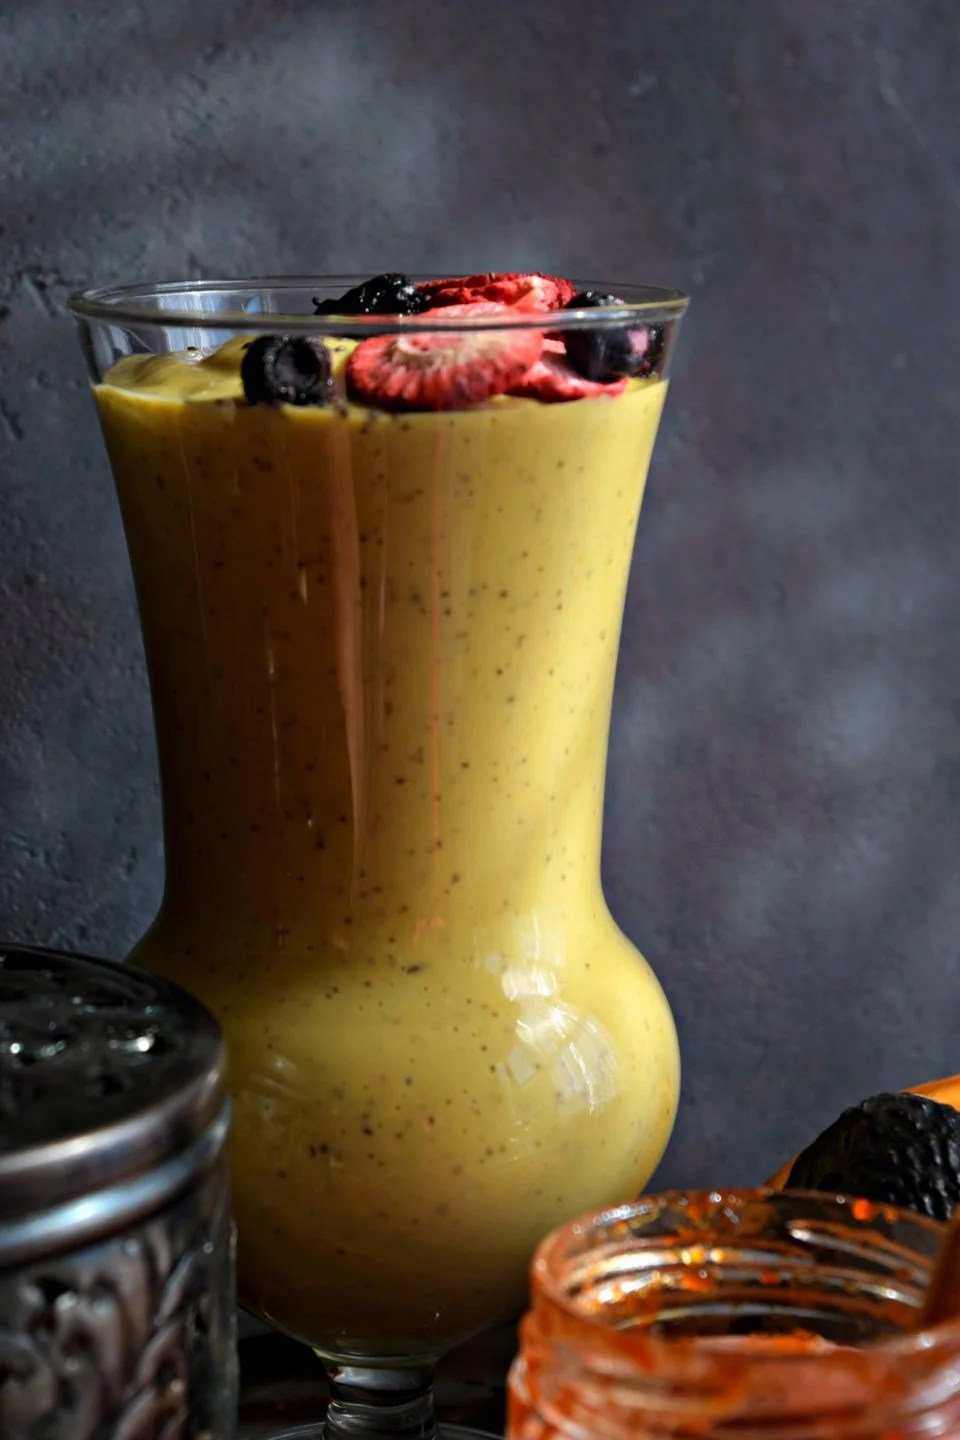 Creamy Vegan Mango Avocado Smoothie tastes so good that you won't believe it. It's extremely nutritious, delicious & a great way to kick-start your day.